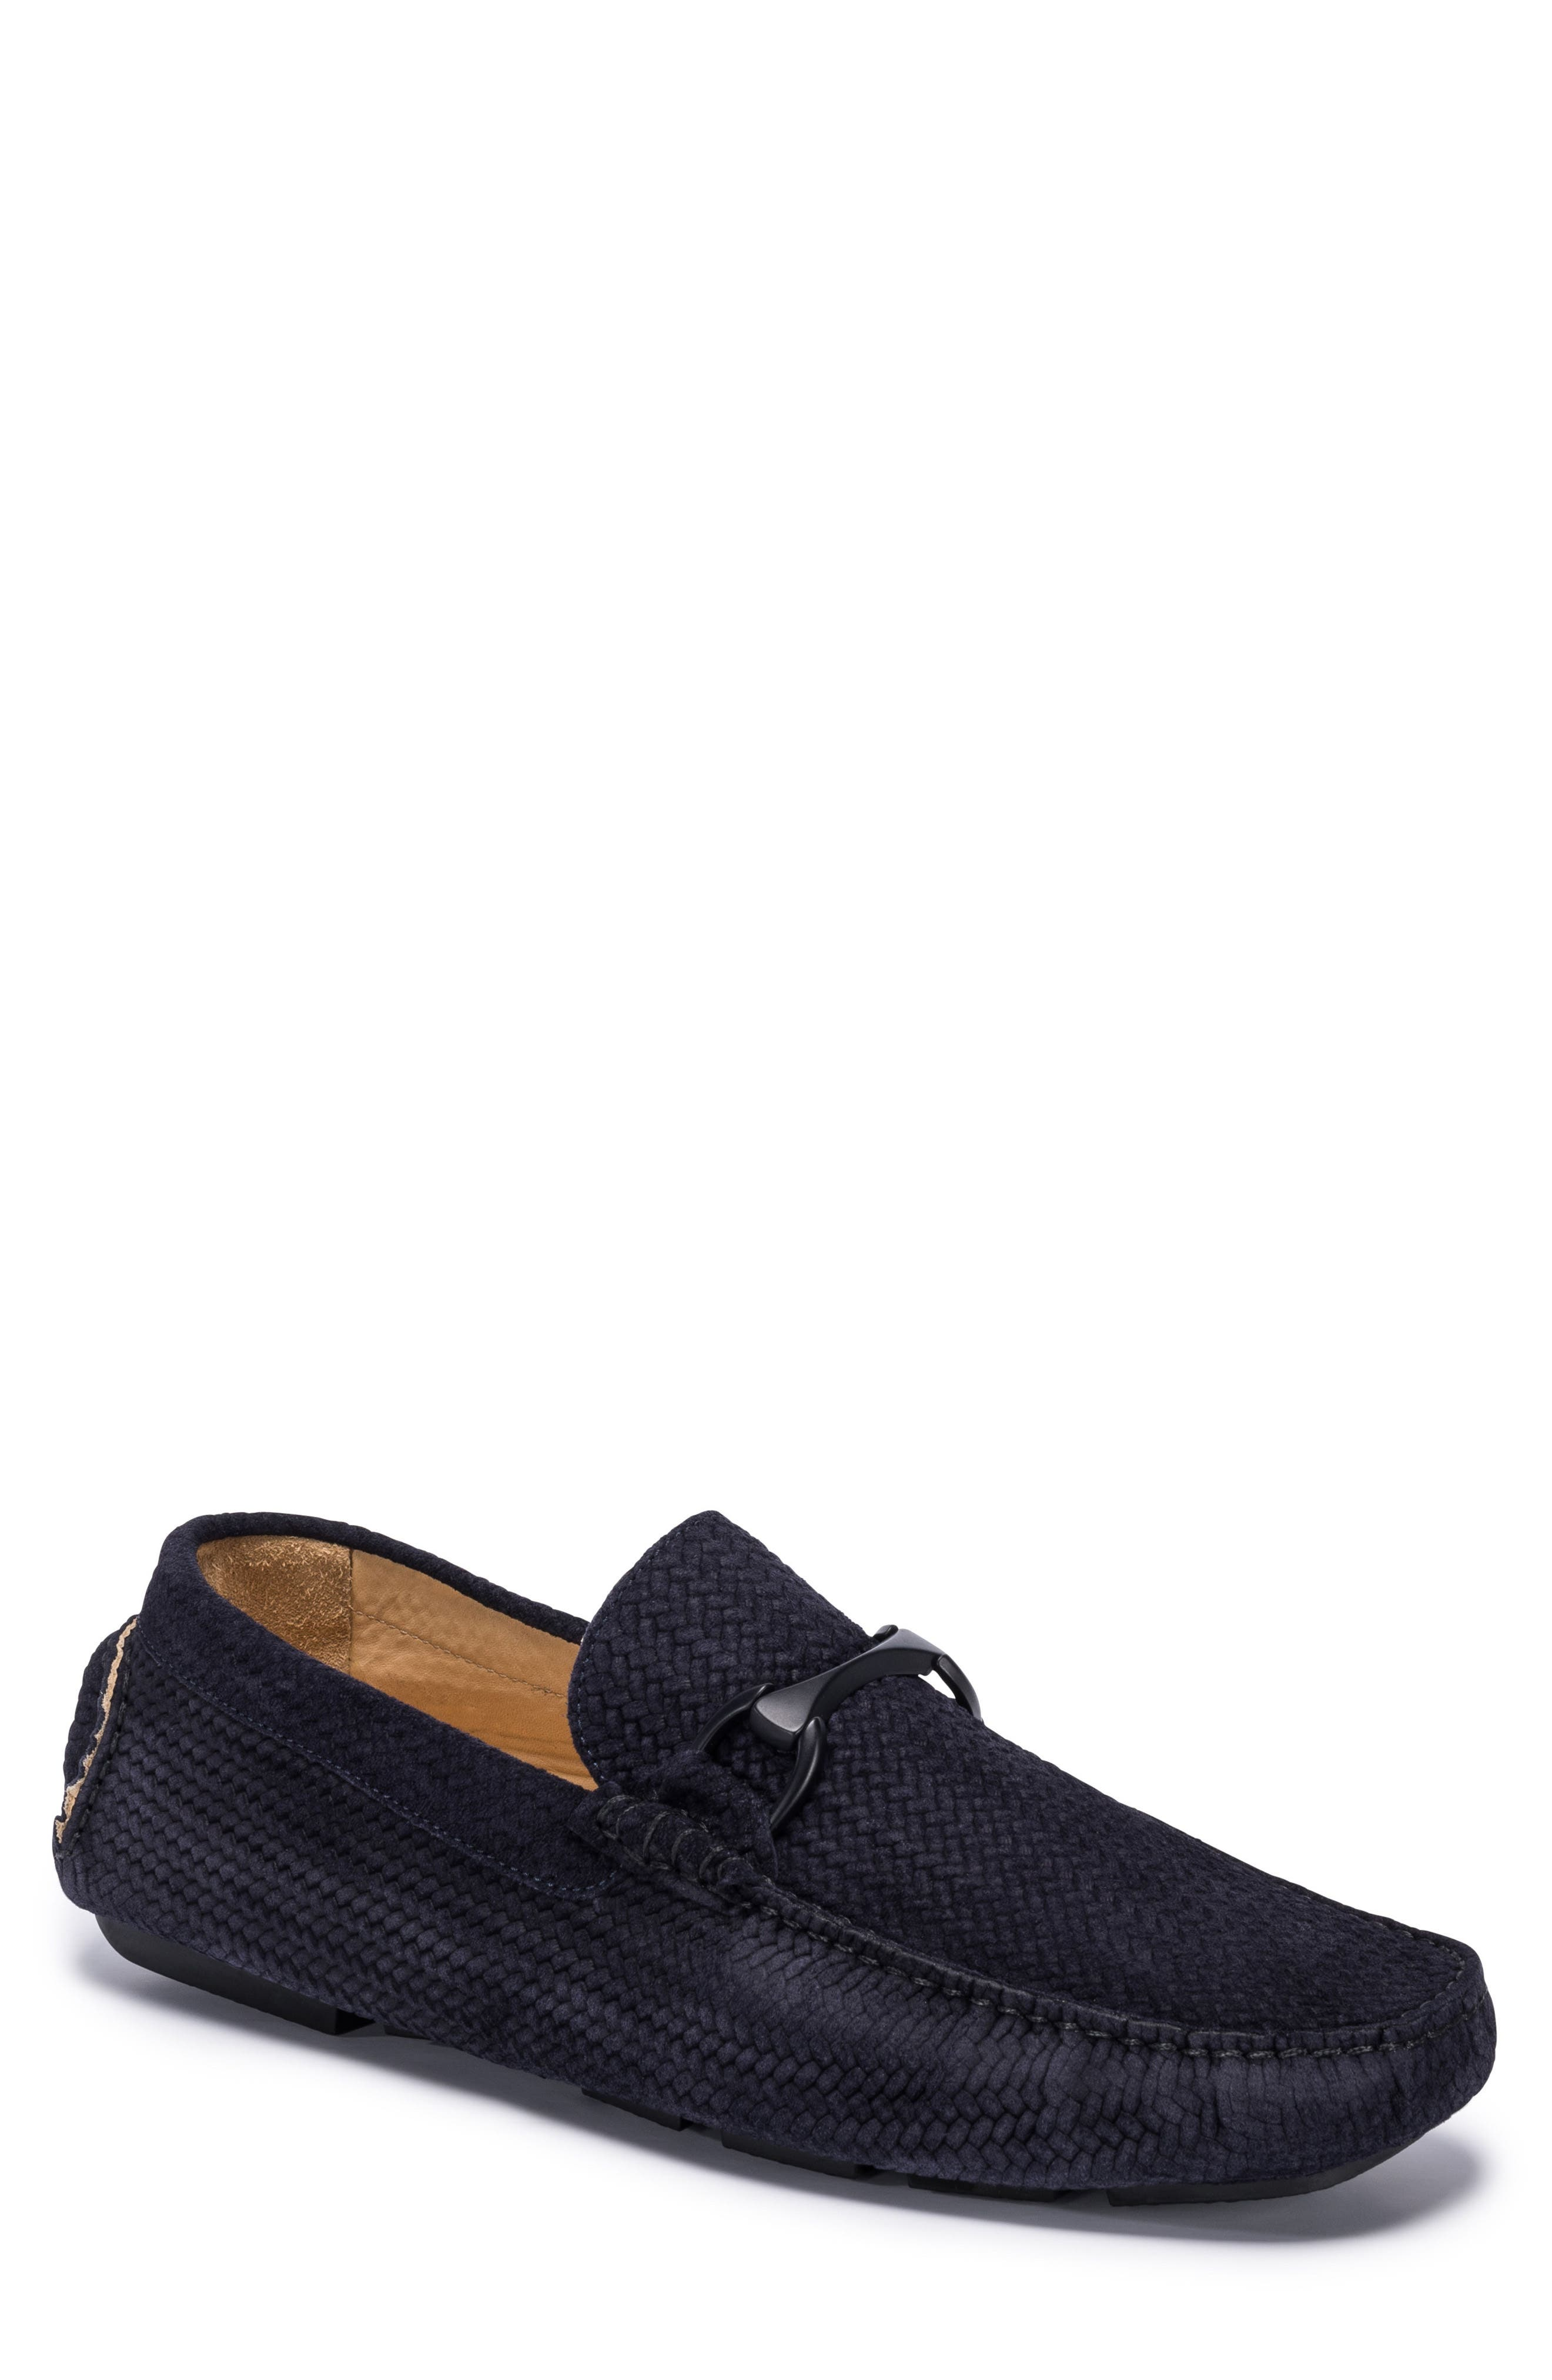 Amalfi Woven Bit Driving Loafer,                             Main thumbnail 1, color,                             429